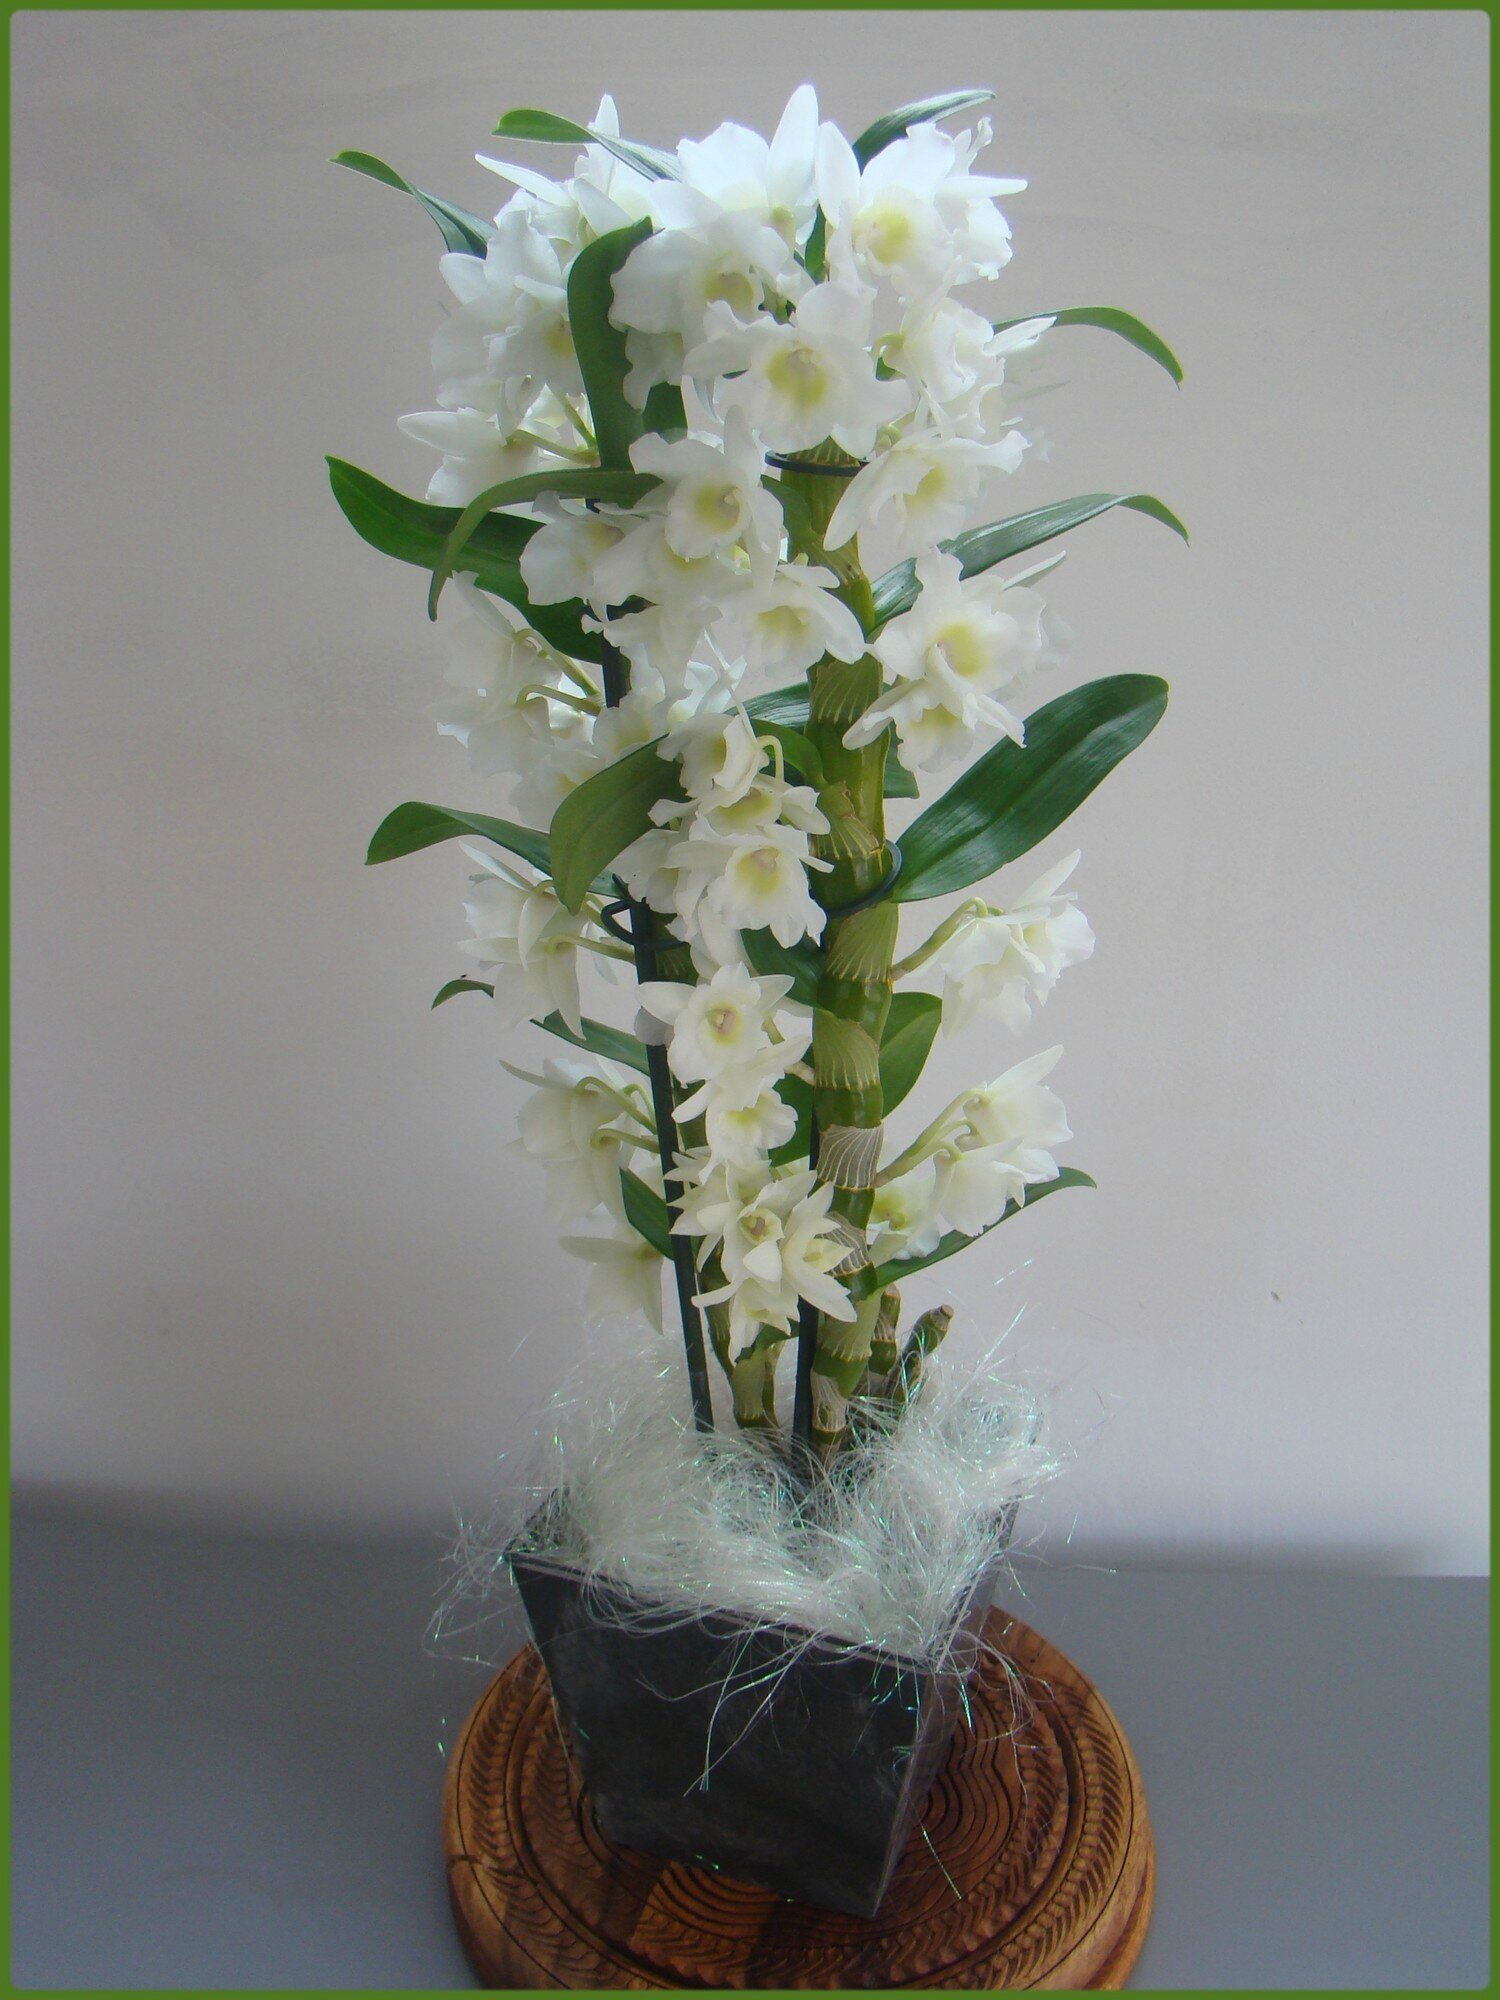 Orchid e dendrobium nobile miss gleni and co Comment entretenir orchidee